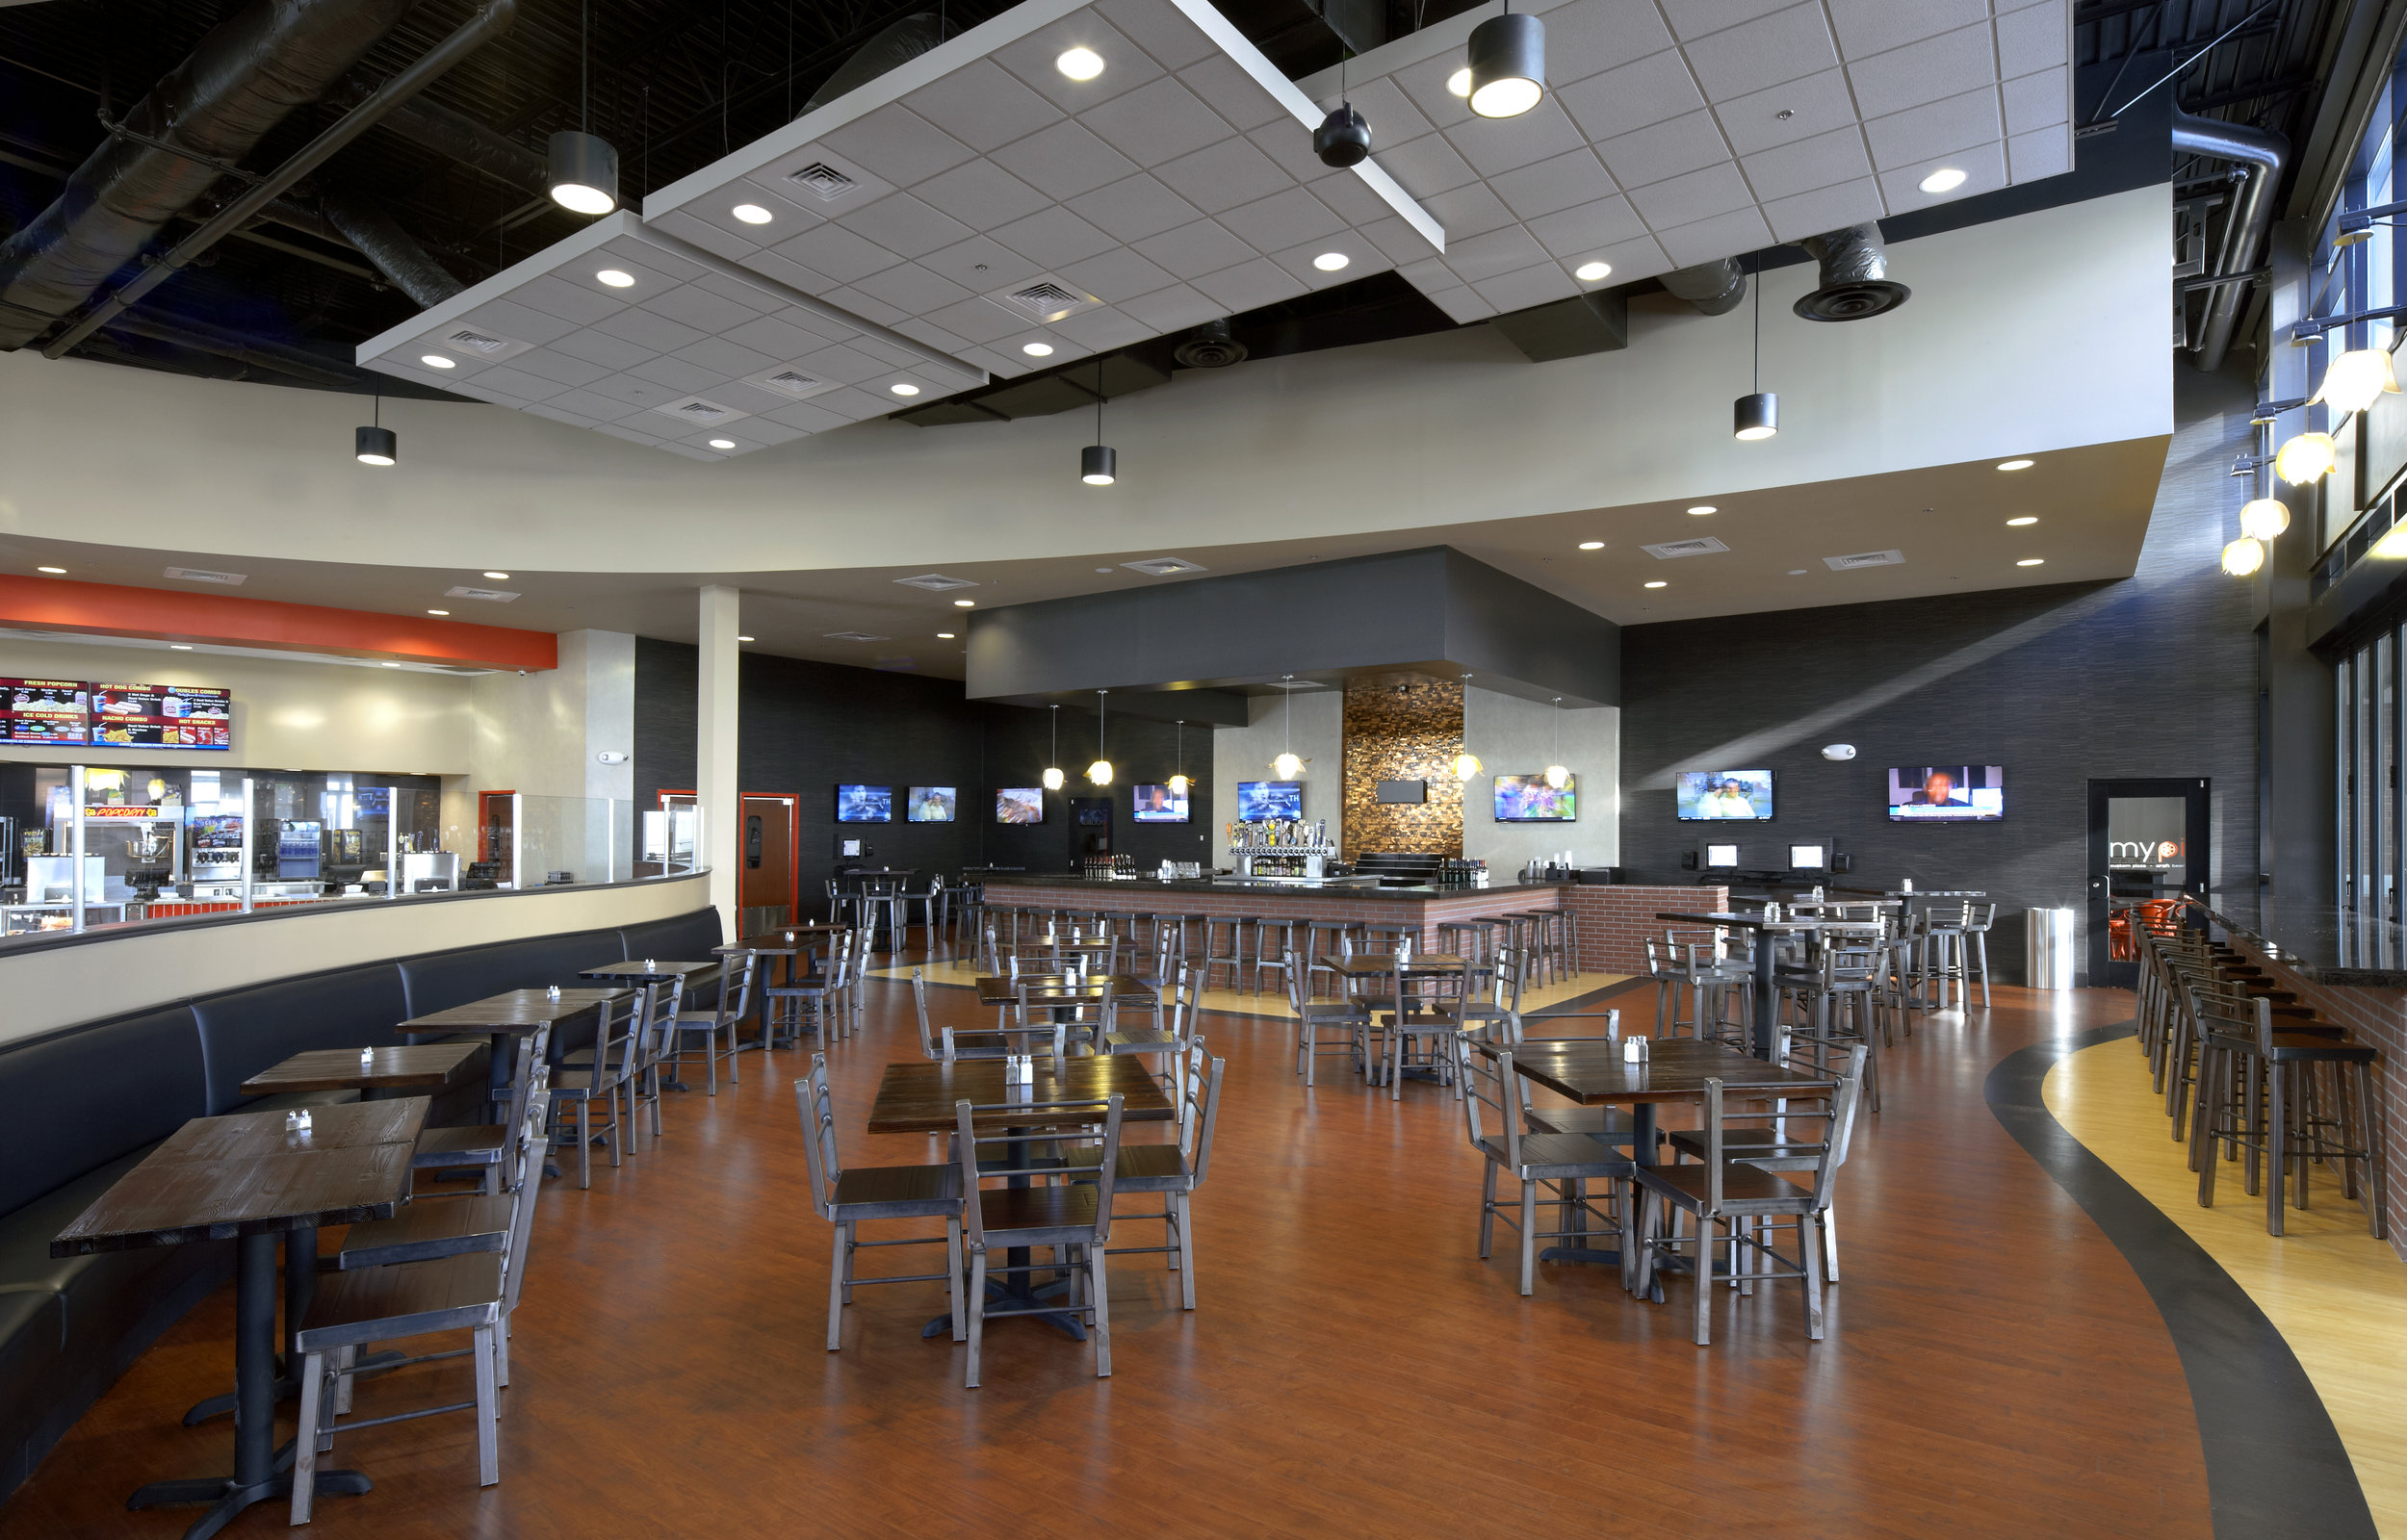 ADW-Office+Mixed-Use-Entertainment-Paragon-Theaters-Newport-News-VA-6.jpg